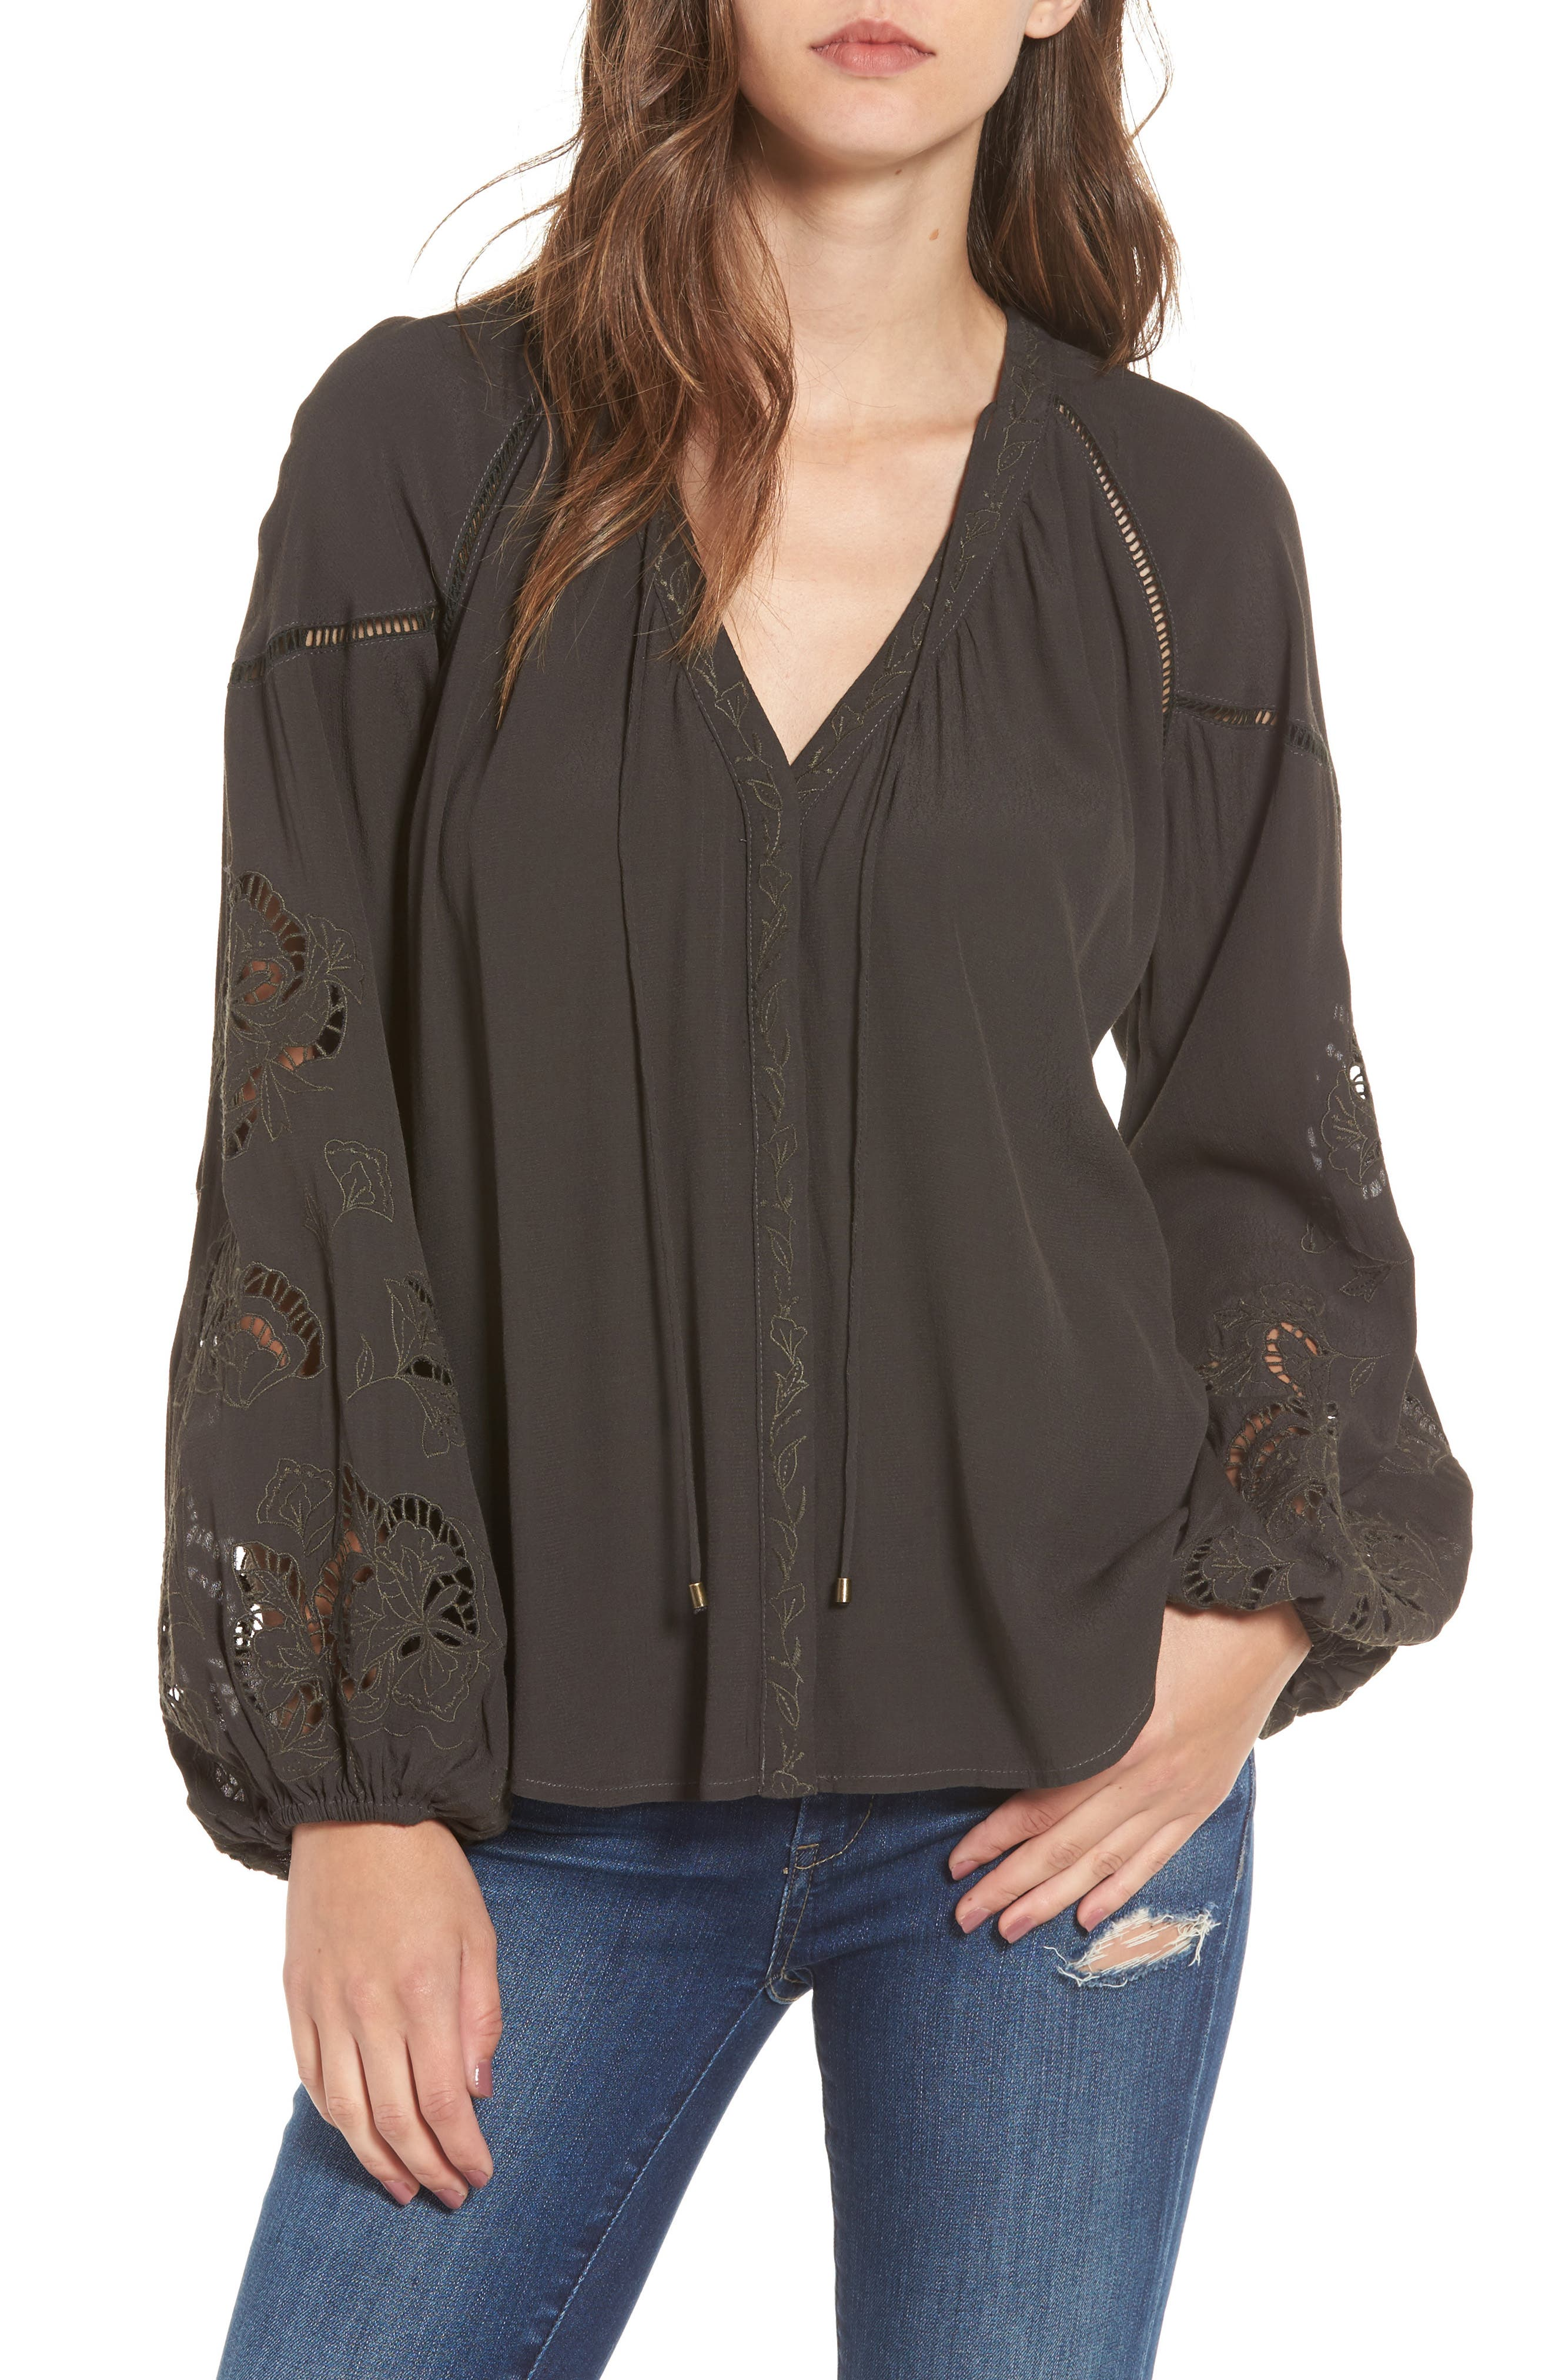 Jennie Blouse,                         Main,                         color, 021